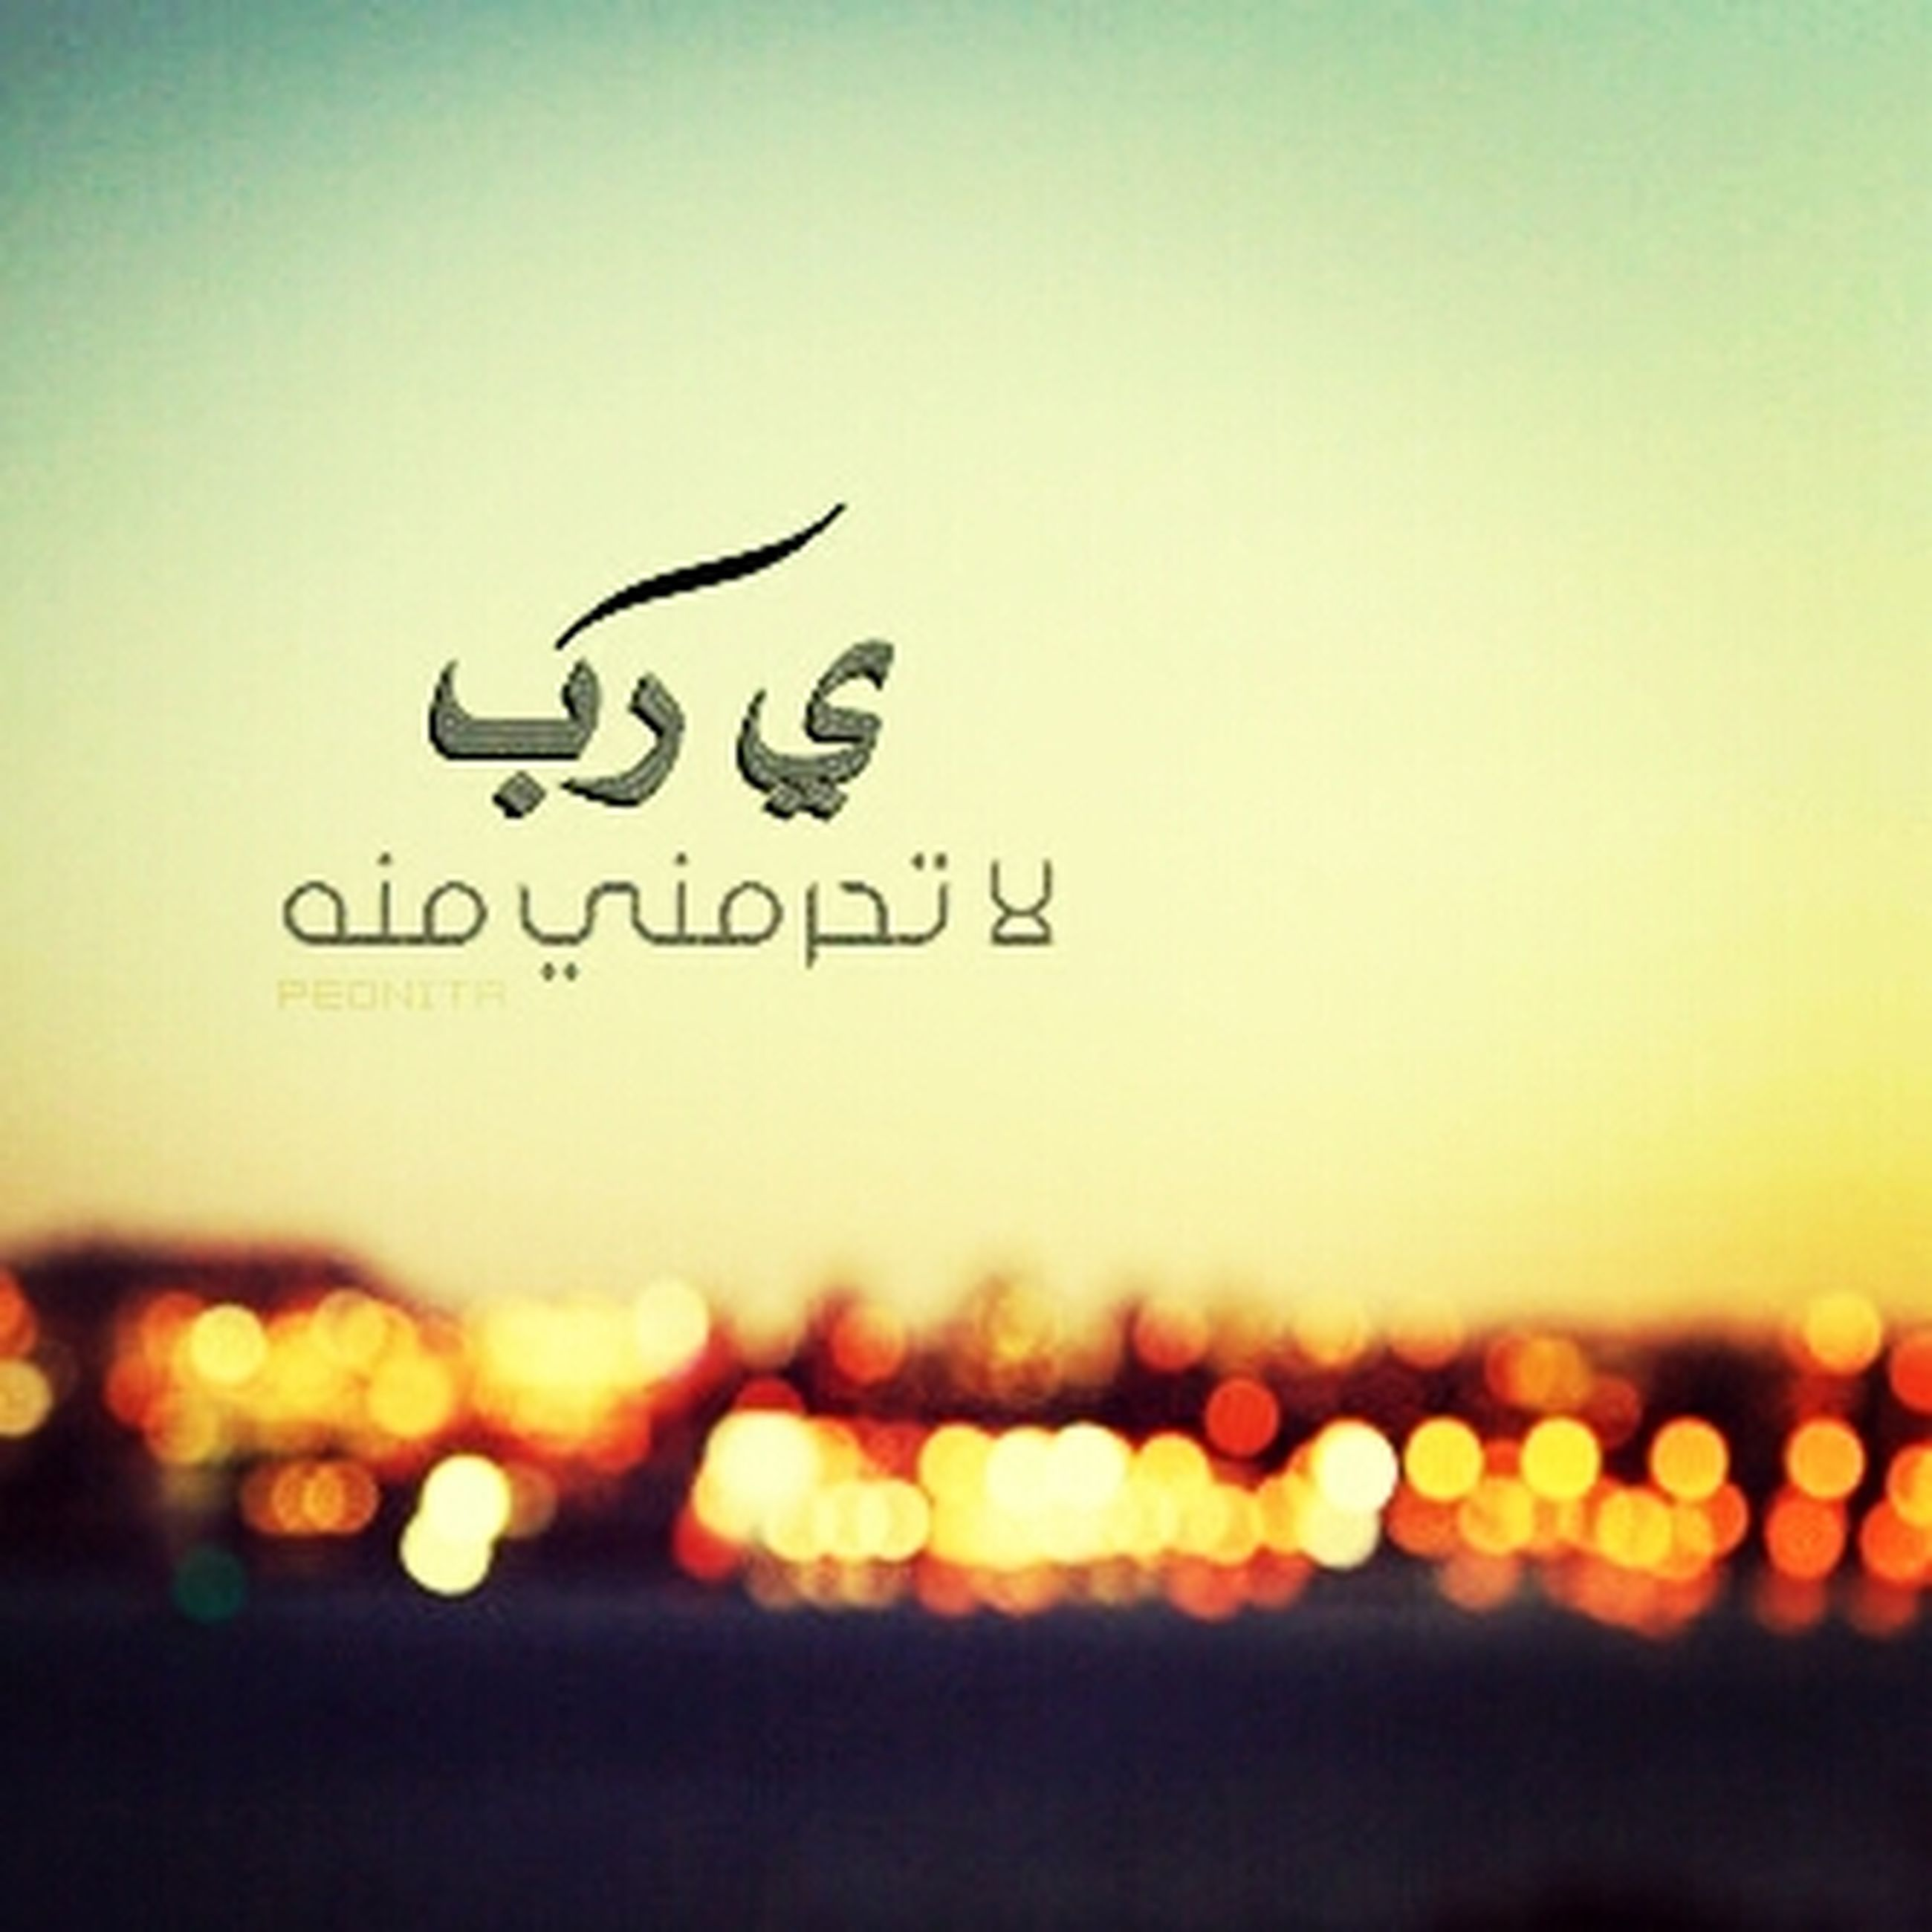 text, western script, communication, copy space, clear sky, close-up, non-western script, focus on foreground, illuminated, sunset, capital letter, no people, selective focus, human representation, outdoors, orange color, sign, information, art, creativity